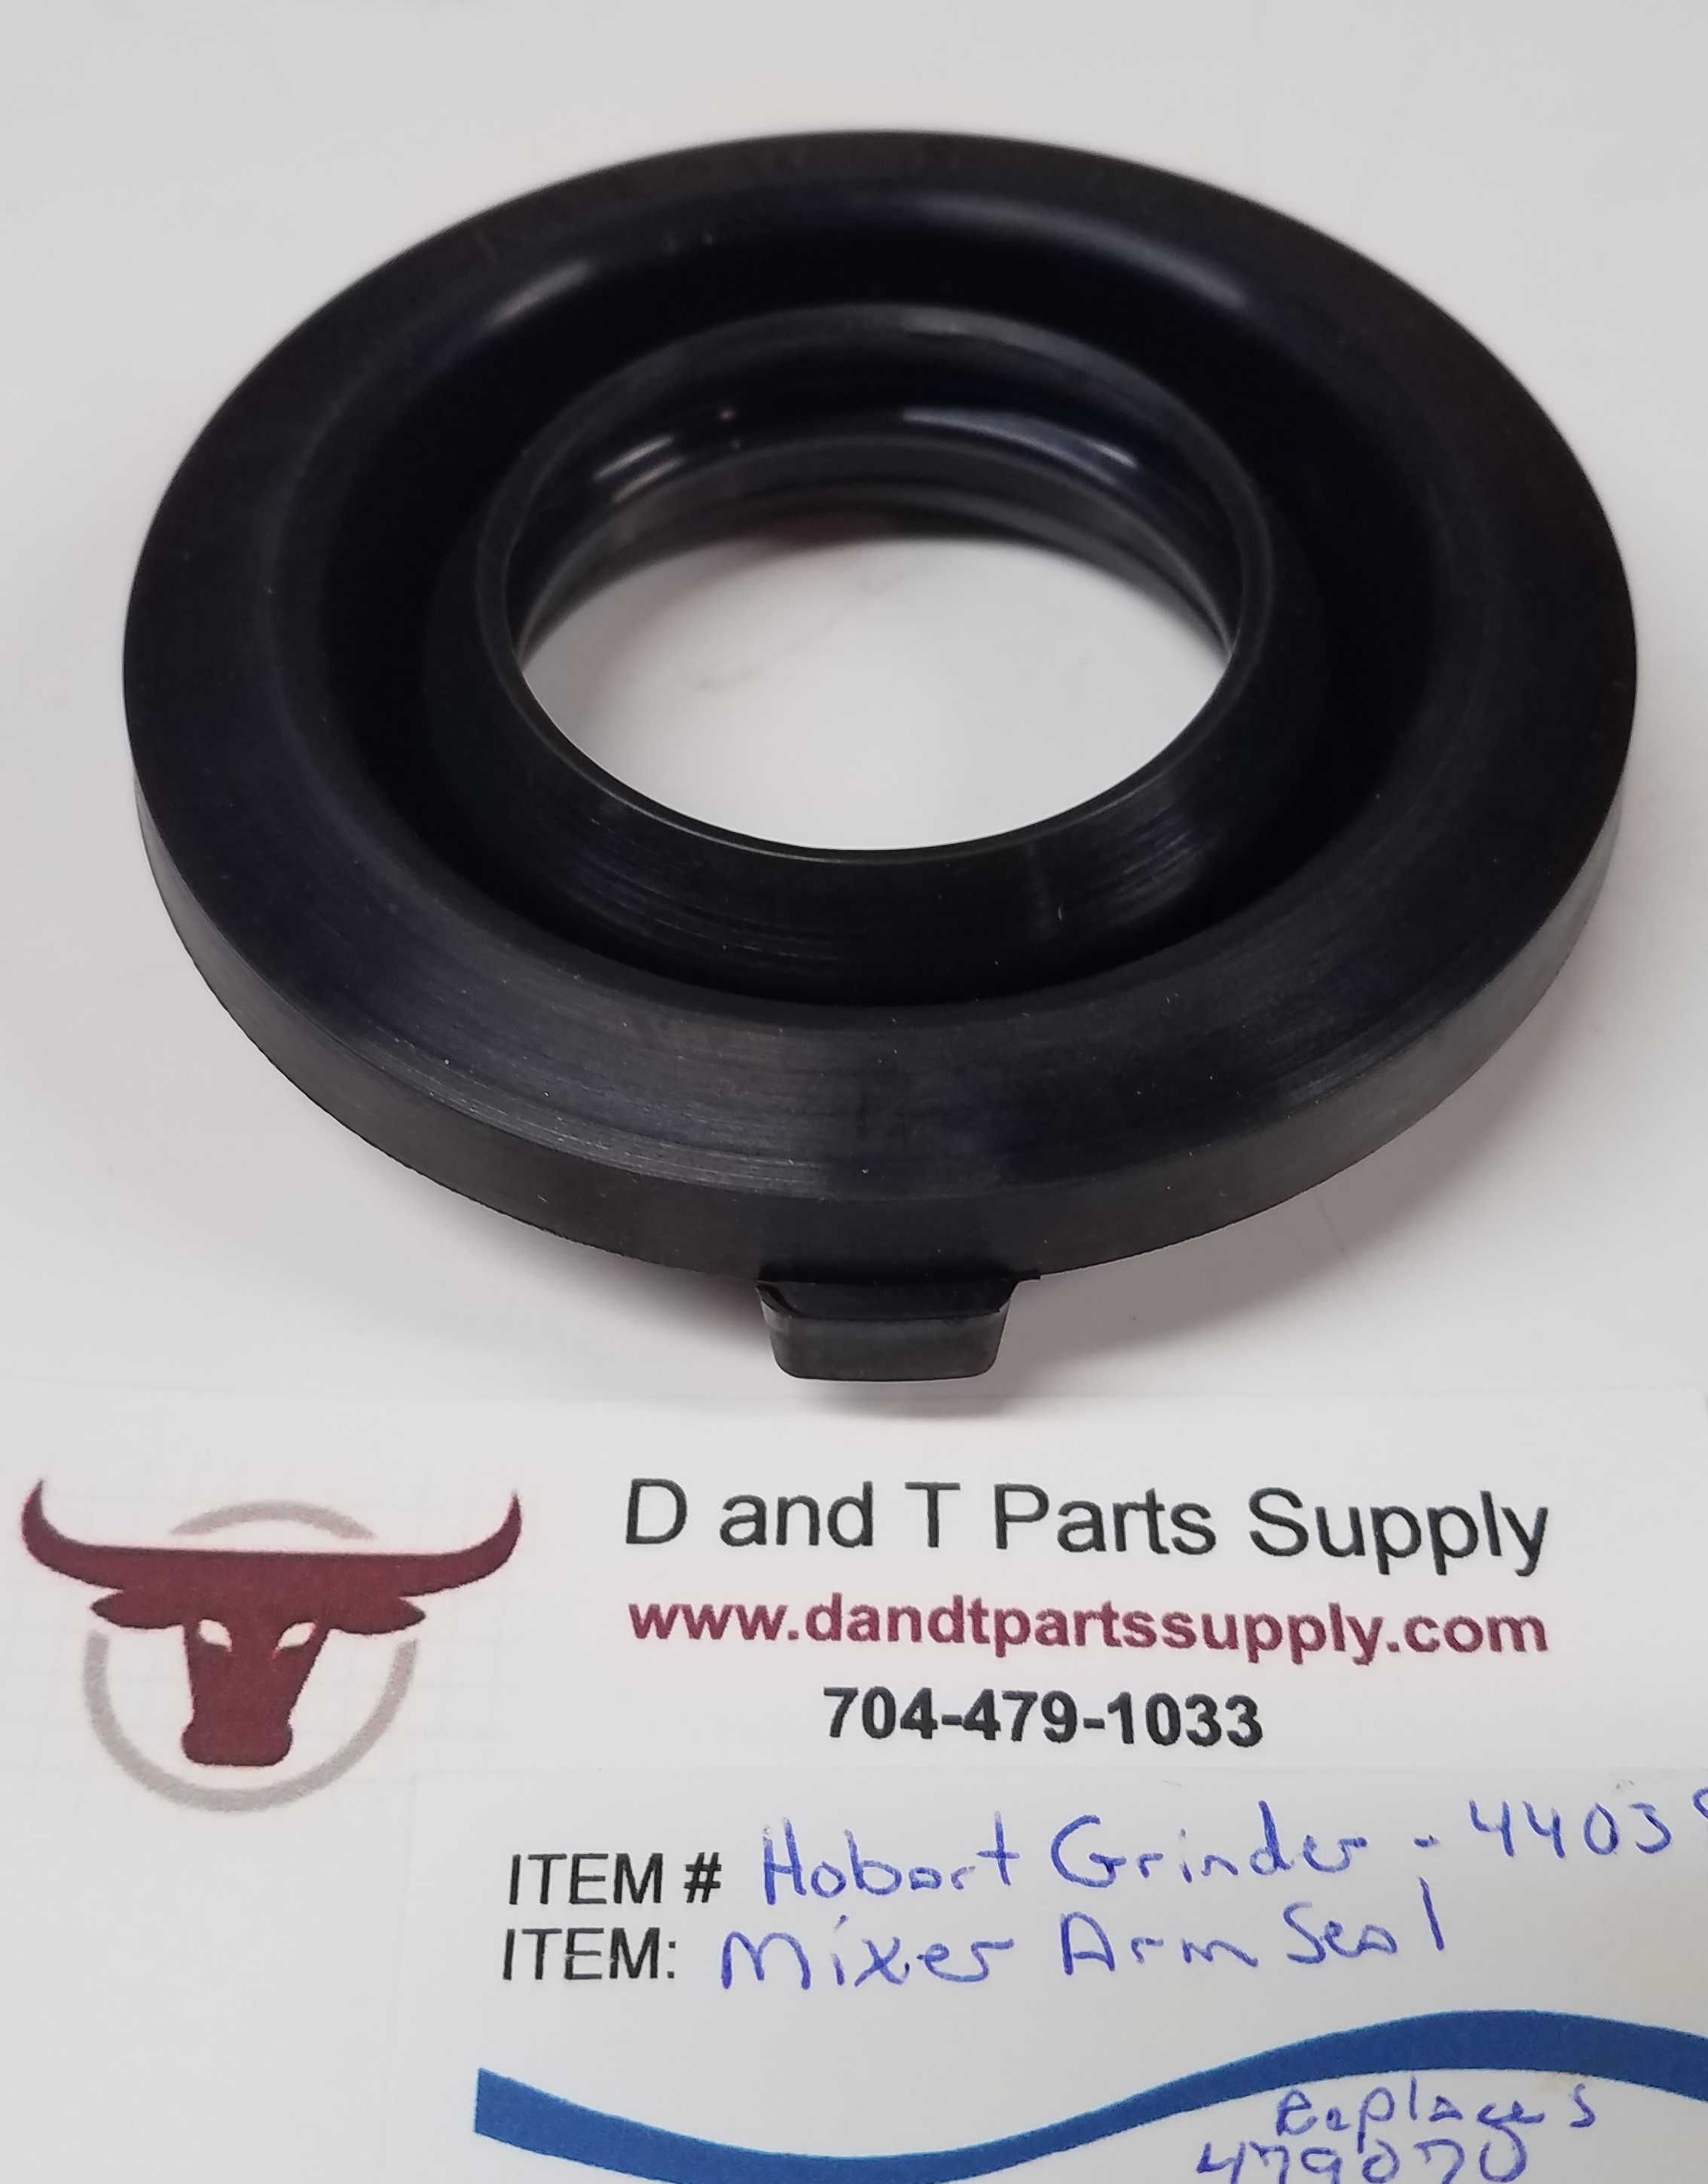 HOBART RING /& CYLINDER WRENCH PART 00-439242 FOR MODELS MG1532 MG2032